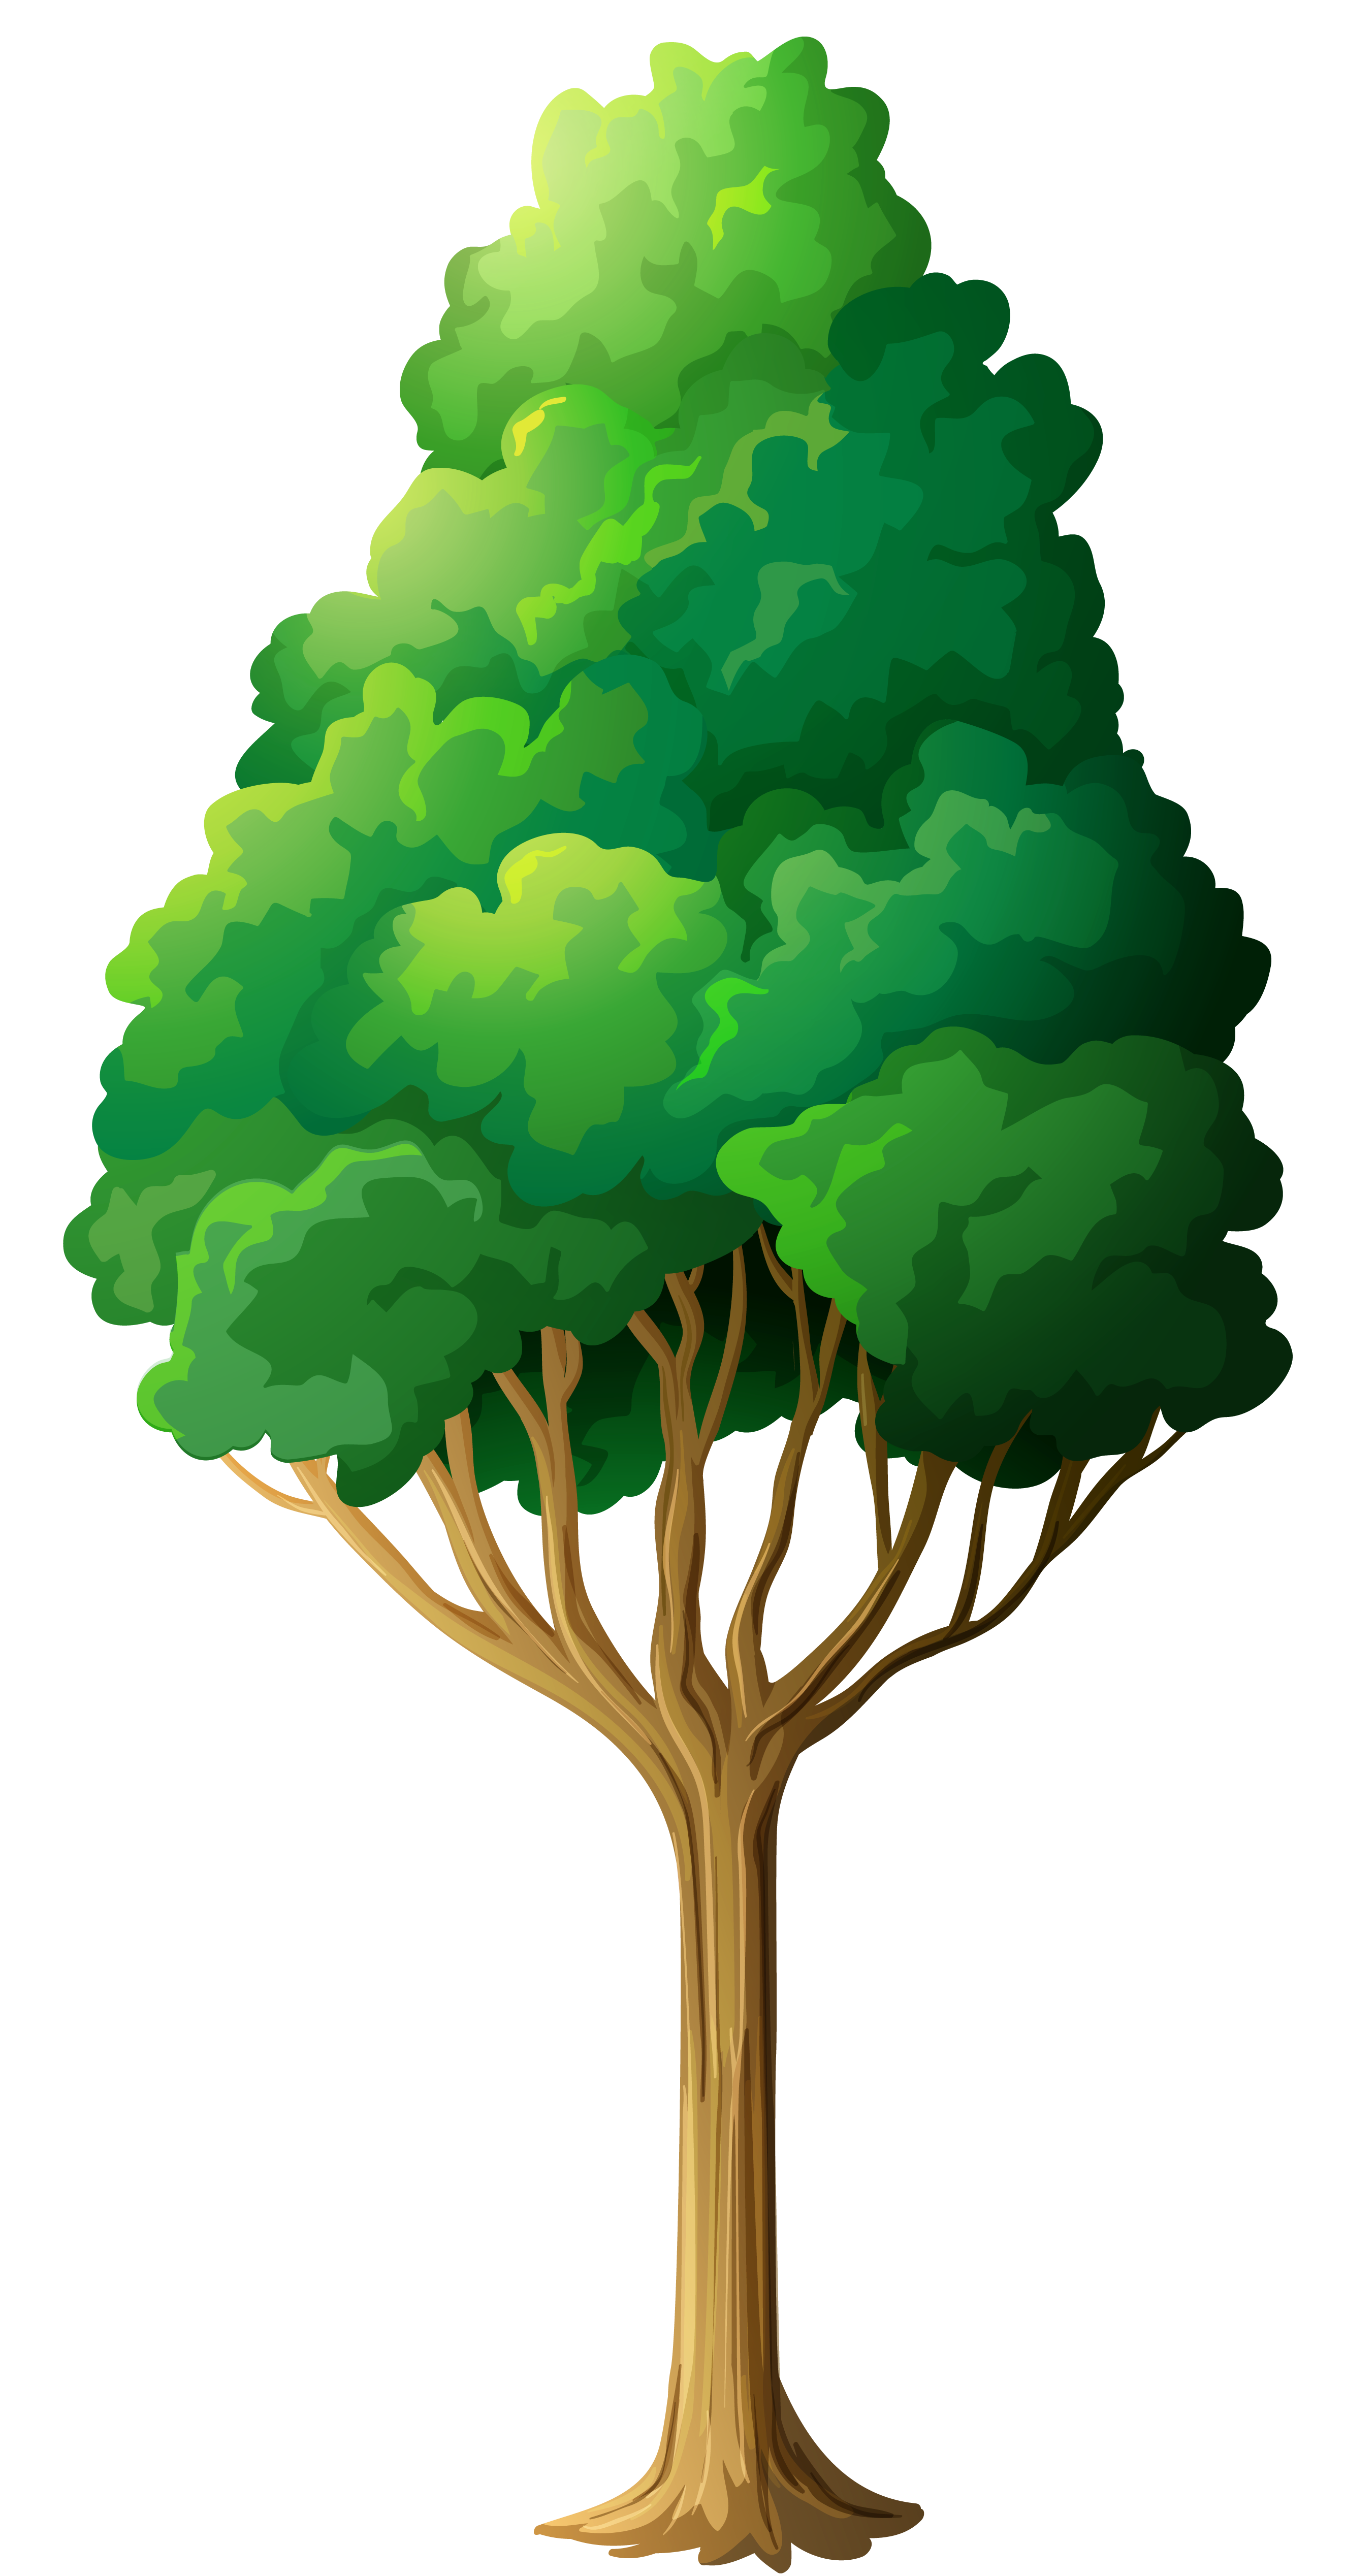 Tree clipart green. Png gallery yopriceville high